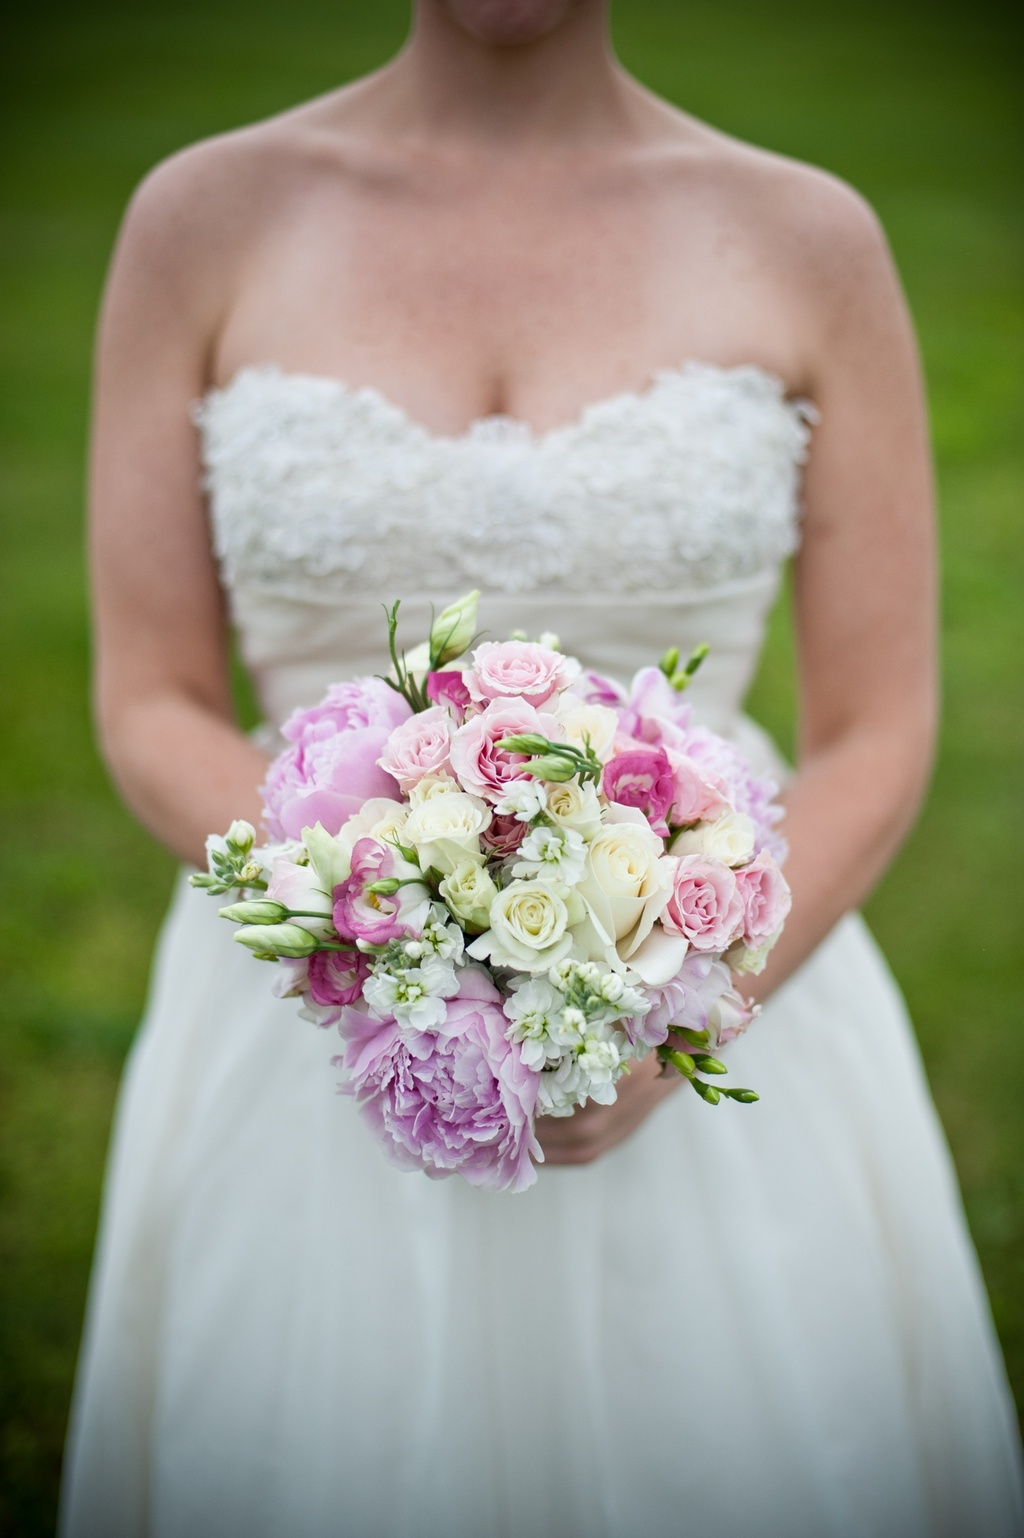 Romantic-bridal-bouquet-real-weddings-outdoor.full